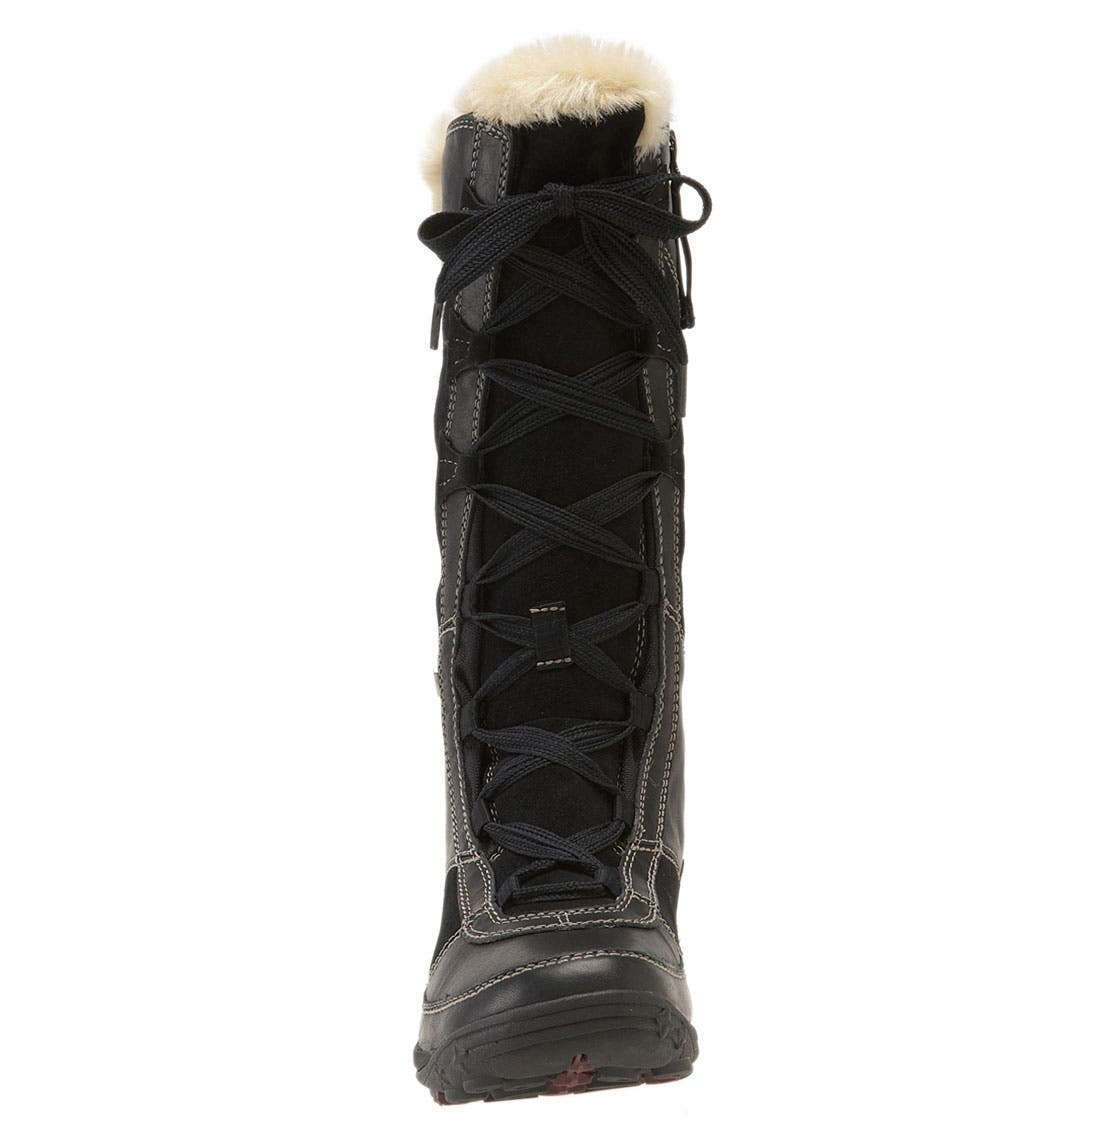 'Prevoz' Waterproof Tall Boot,                             Alternate thumbnail 2, color,                             001